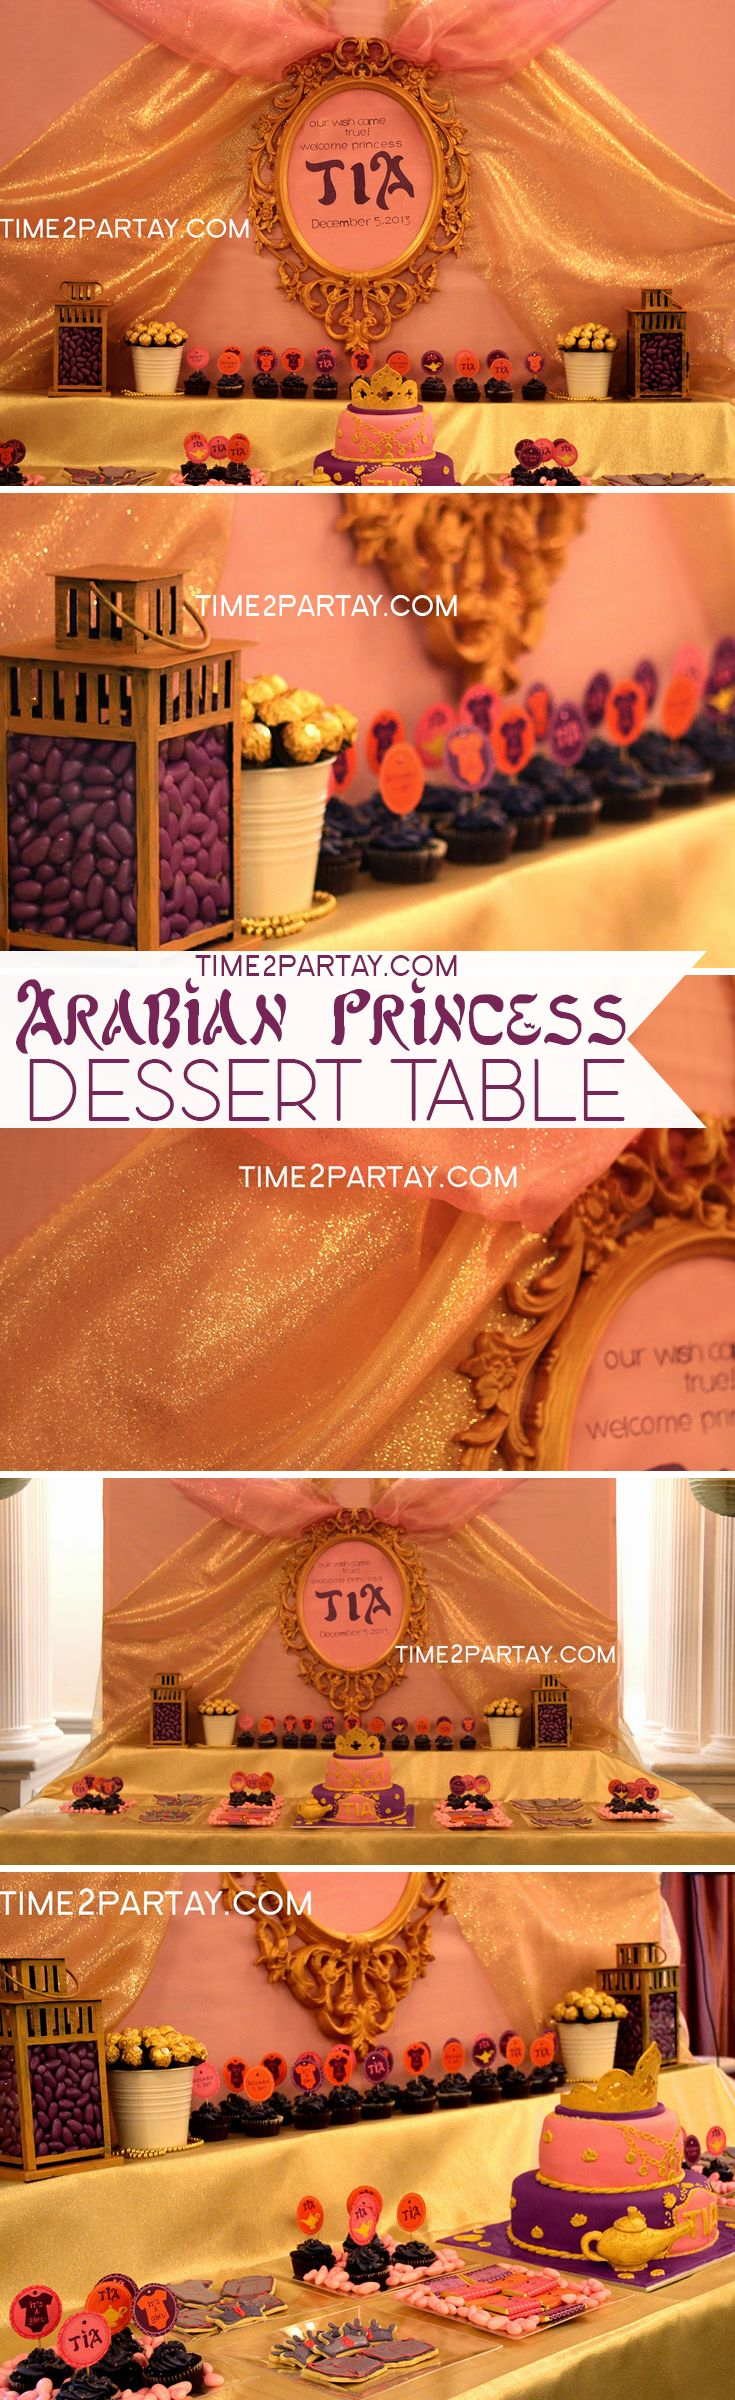 Arabian Princess Tia Has Arrived {A Welcome Baby Party}. Dessert Table #arabian #princess #jewels #cake #cupcakes #cookies #royal #birthday #baby #shower #sweets #chocolate #pink #gold #purple #orange #candy